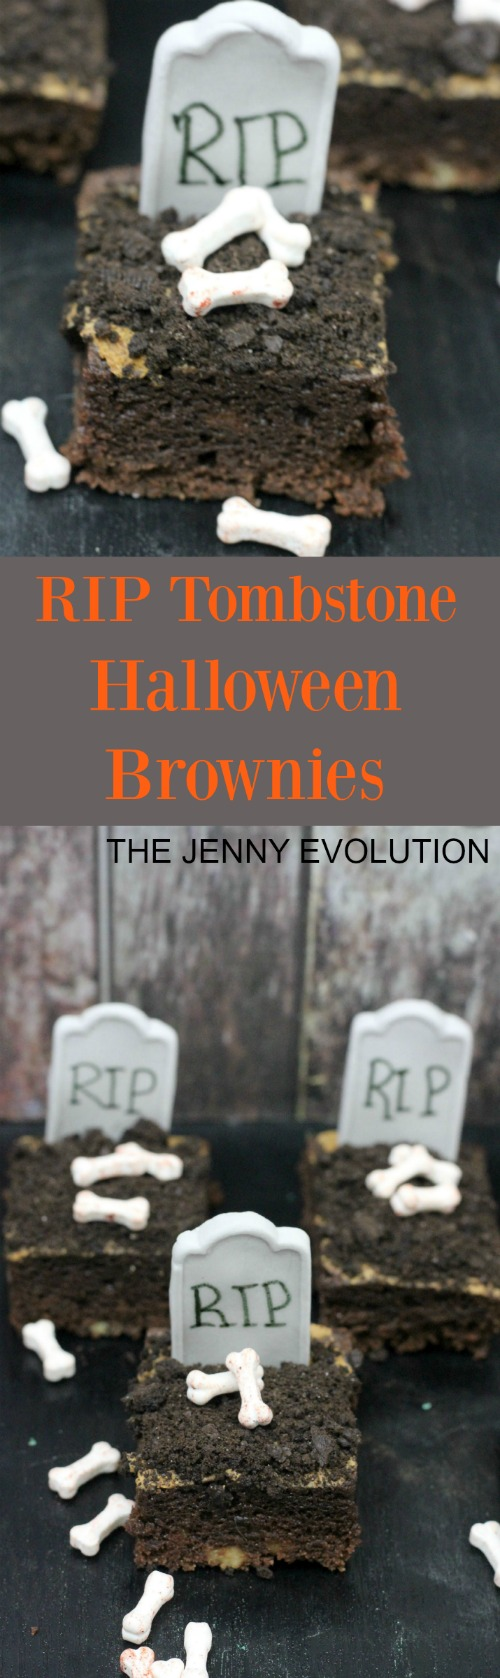 RIP Tombstone Halloween Brownies Recipe | The Jenny Evolution